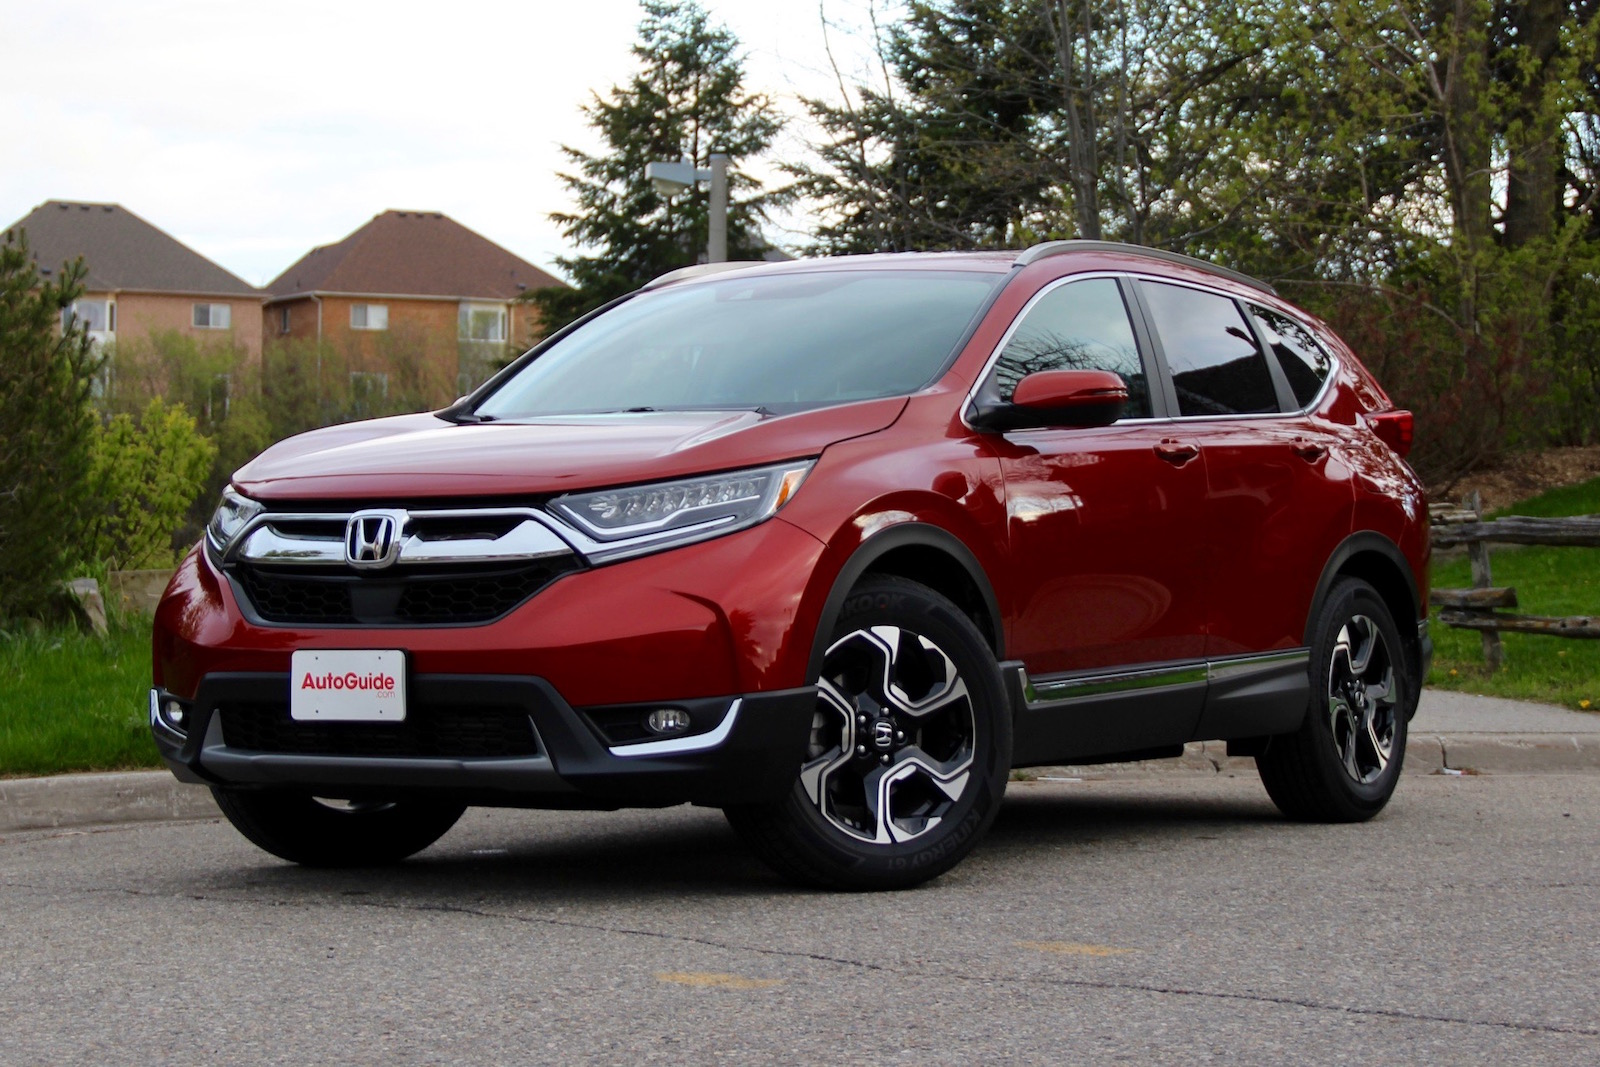 2017 honda cr v long term test update road trip edition for Honda crv 2017 vs 2018